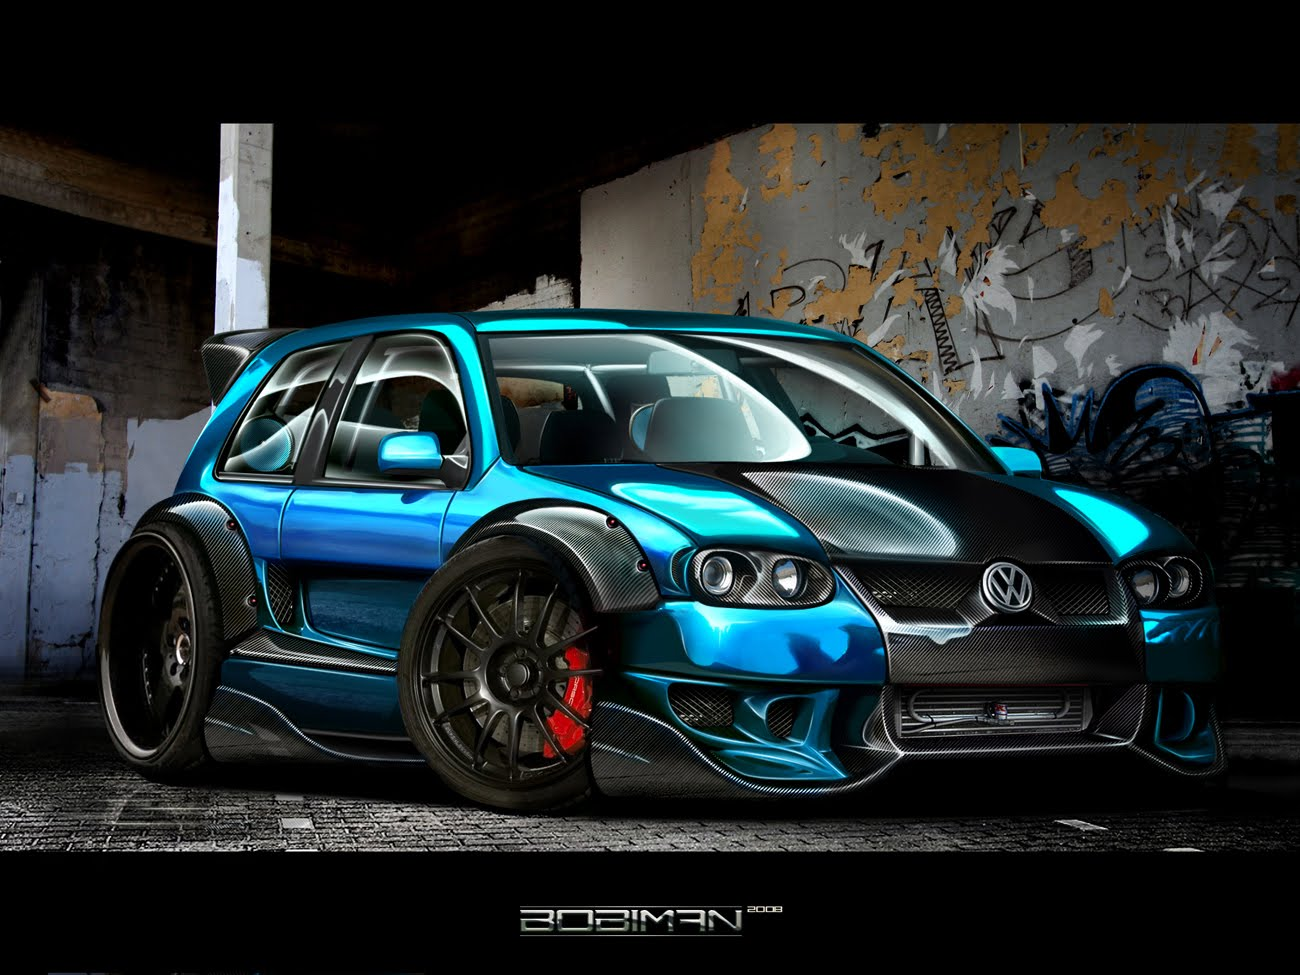 Cool car wallpapers Hd  Cars Wallpapers And Pictures car images,car pics,carPicture